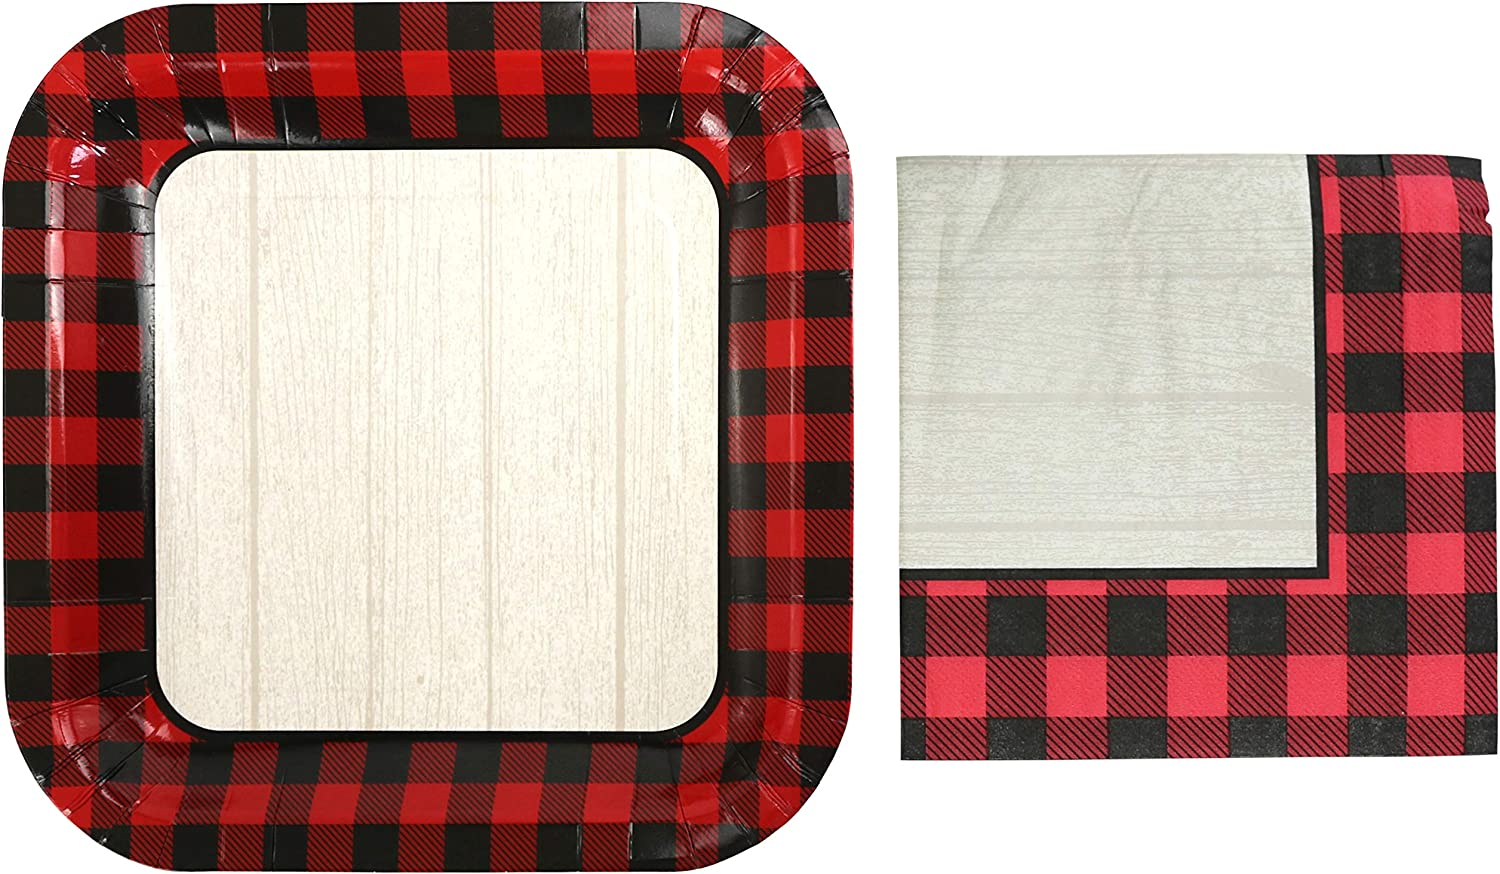 Iconikal Disposable Dinner Christmas Party Pack, 40 Plates and 60 Napkins, Woodgrain Buffalo Plaid